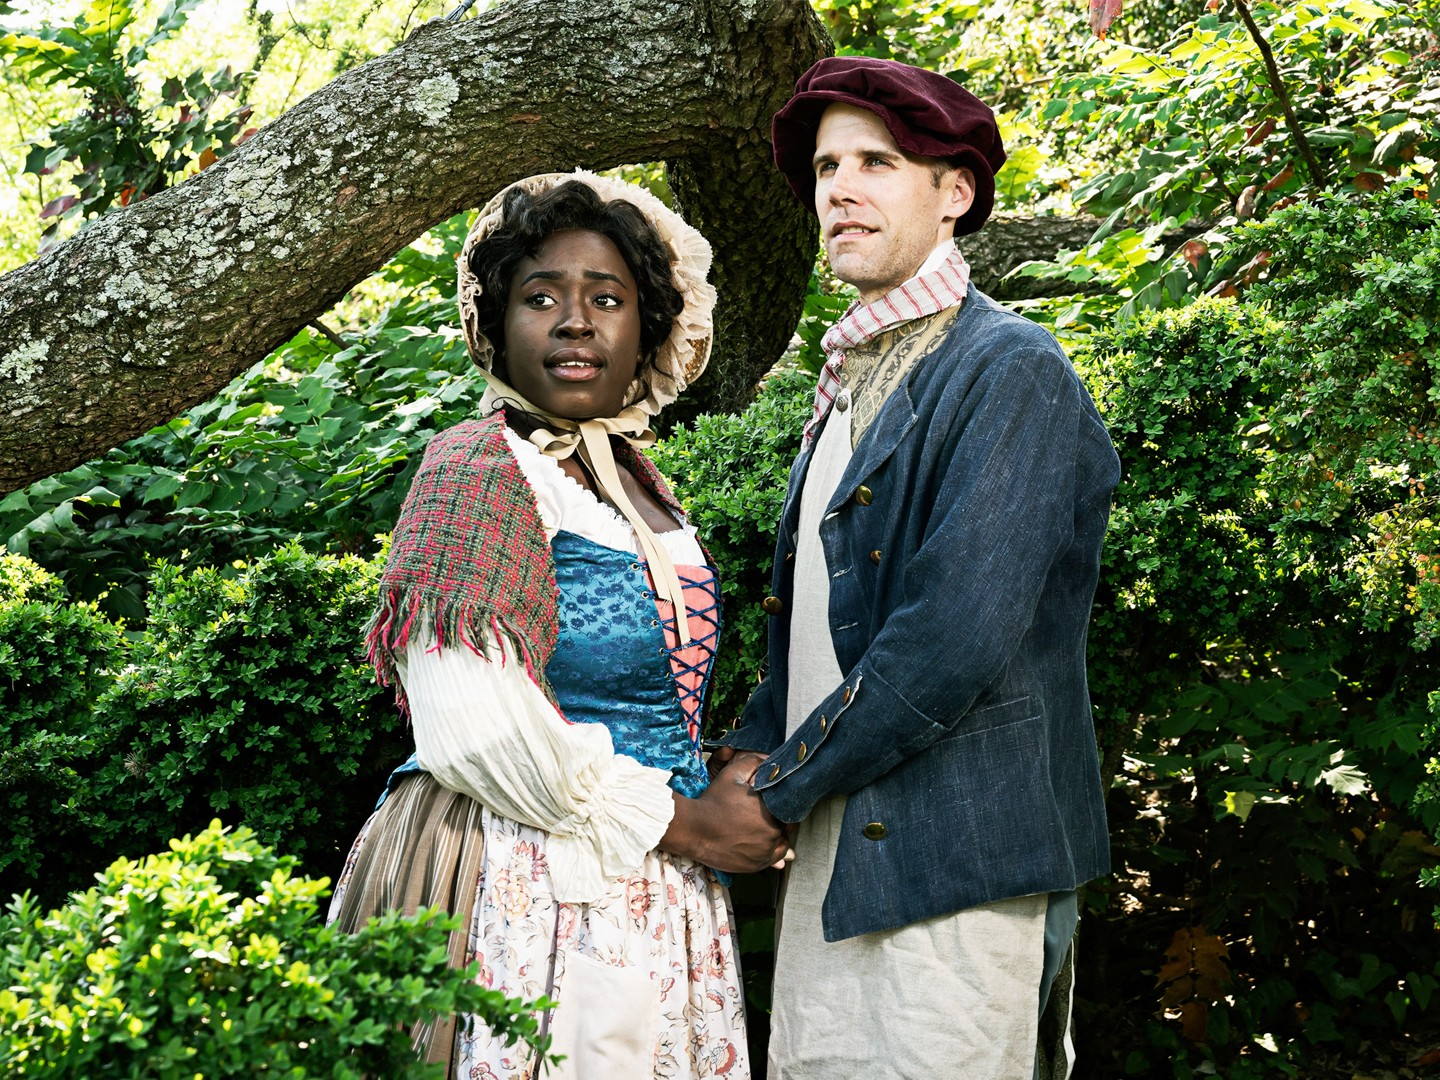 A black woman and white man hold hands in a forest. They are dressed like poor 18th-century fairy tale characters.